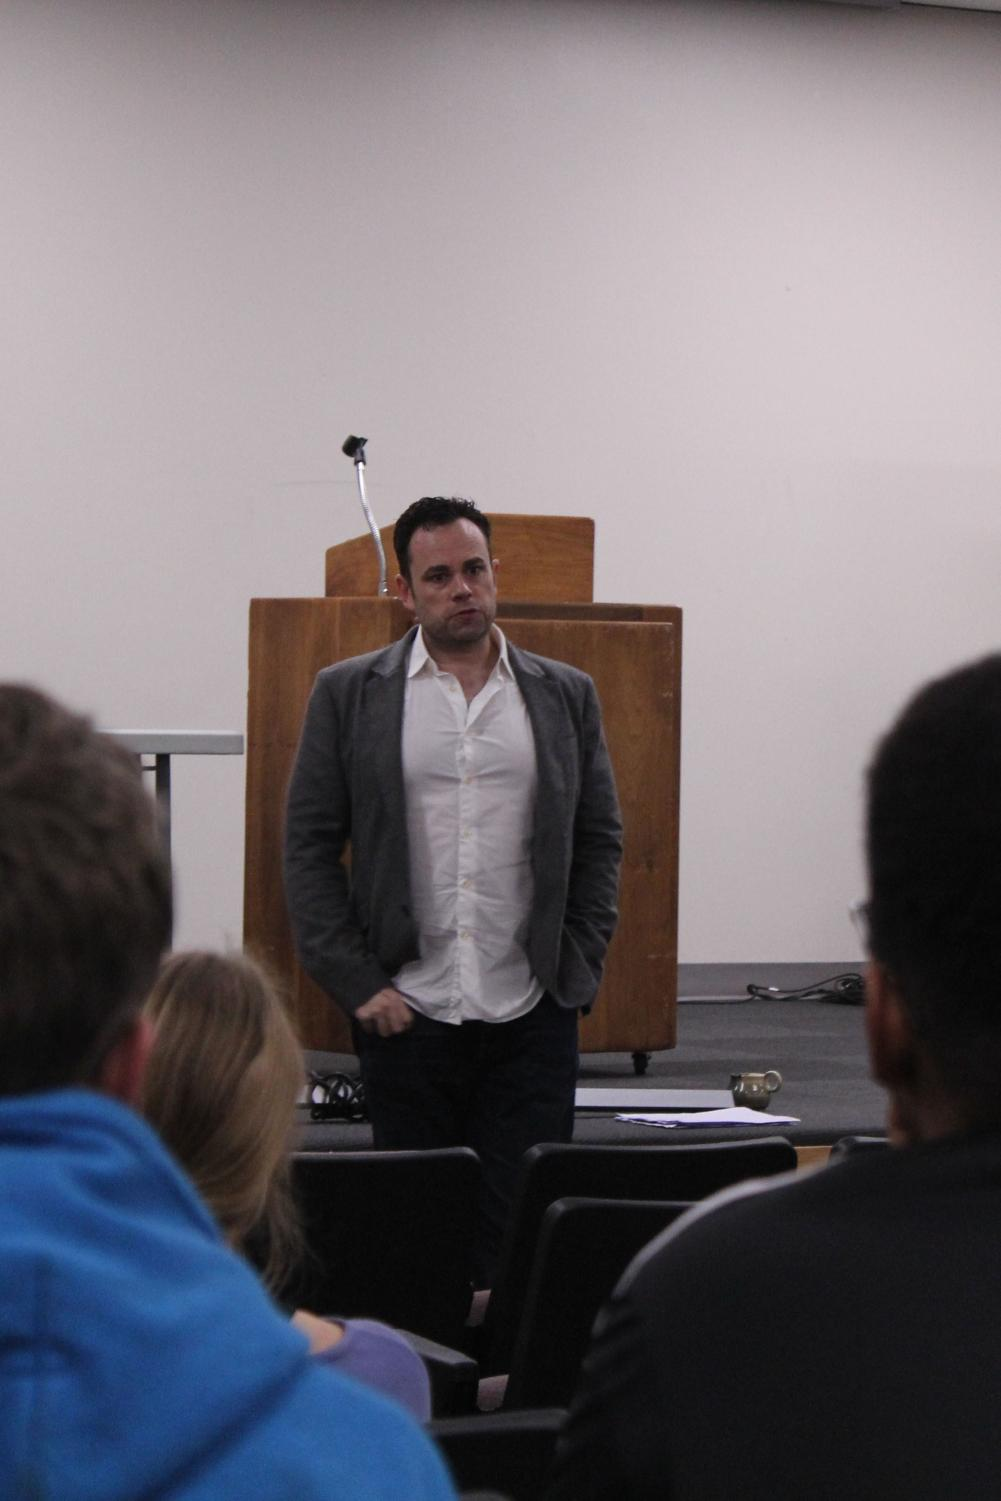 Casting director and screen writer Scotty Mullen spoke to students on Oct. 9 about his career. Mullen offered advice such as not letting rejection get to you and to fully commit to the career.